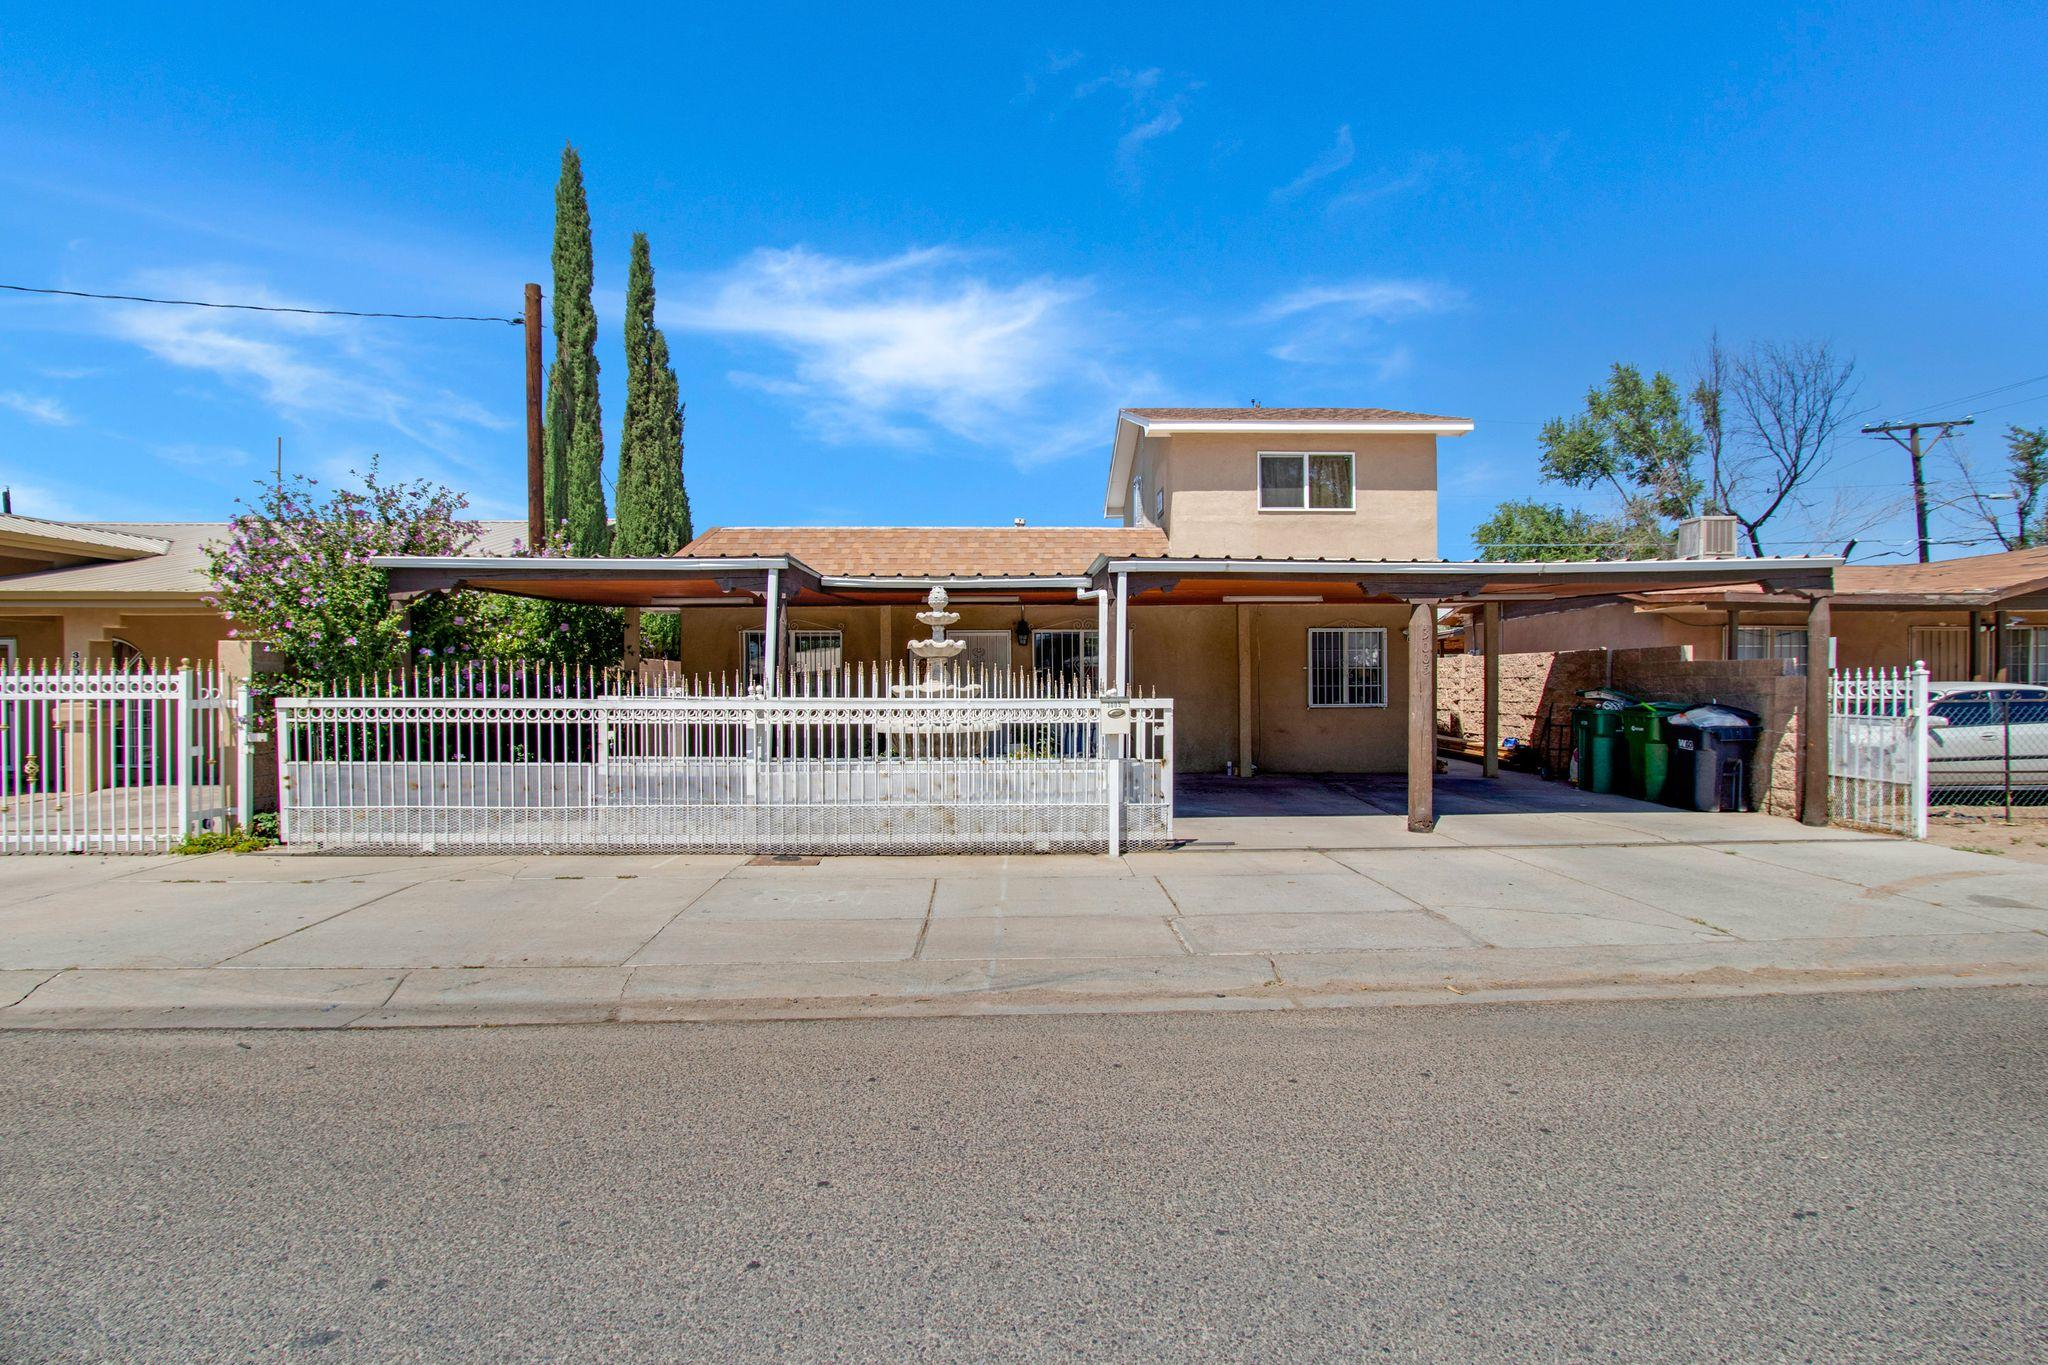 This home is super cozy and ready for it's new owners! (Sq footage not accurate, being verified). This 4 bedroom, 2 bath home is located just off Central and Atrisco making it super convenient to major bus lines, retail, restaurants, bosque trails, Tingley Beach, Zoo, and Bio Park.  The gated drive way has two separate gates allowing for secured off-street parking.  Come check it out today!